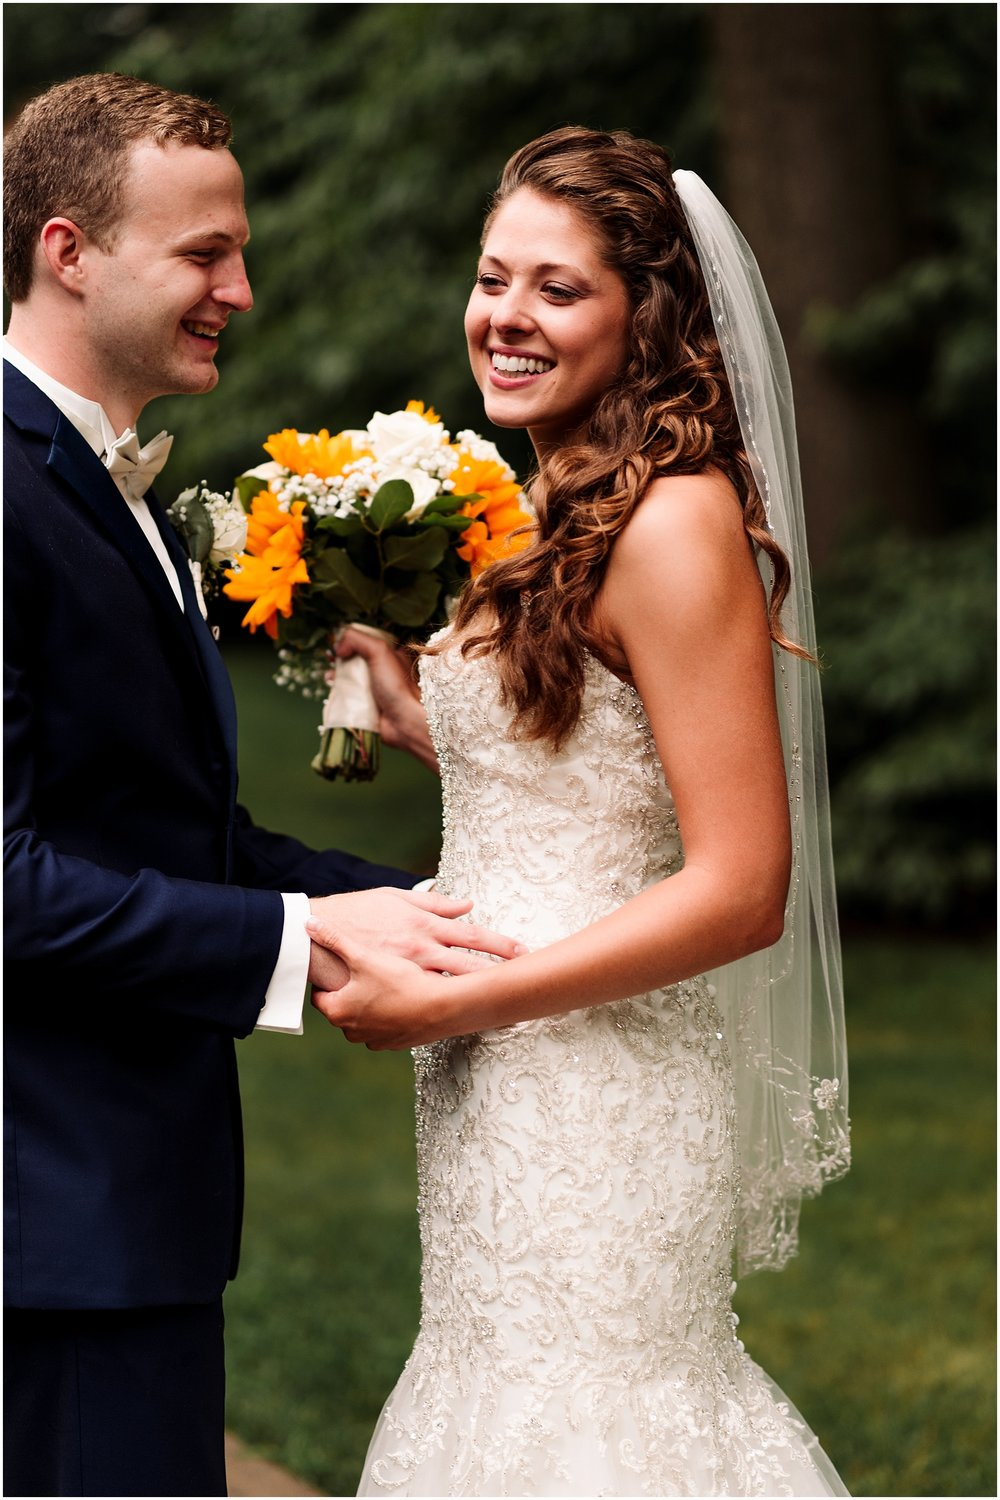 Hannah Leigh Photography Nittany Lion Inn Wedding State College PA_5029.jpg